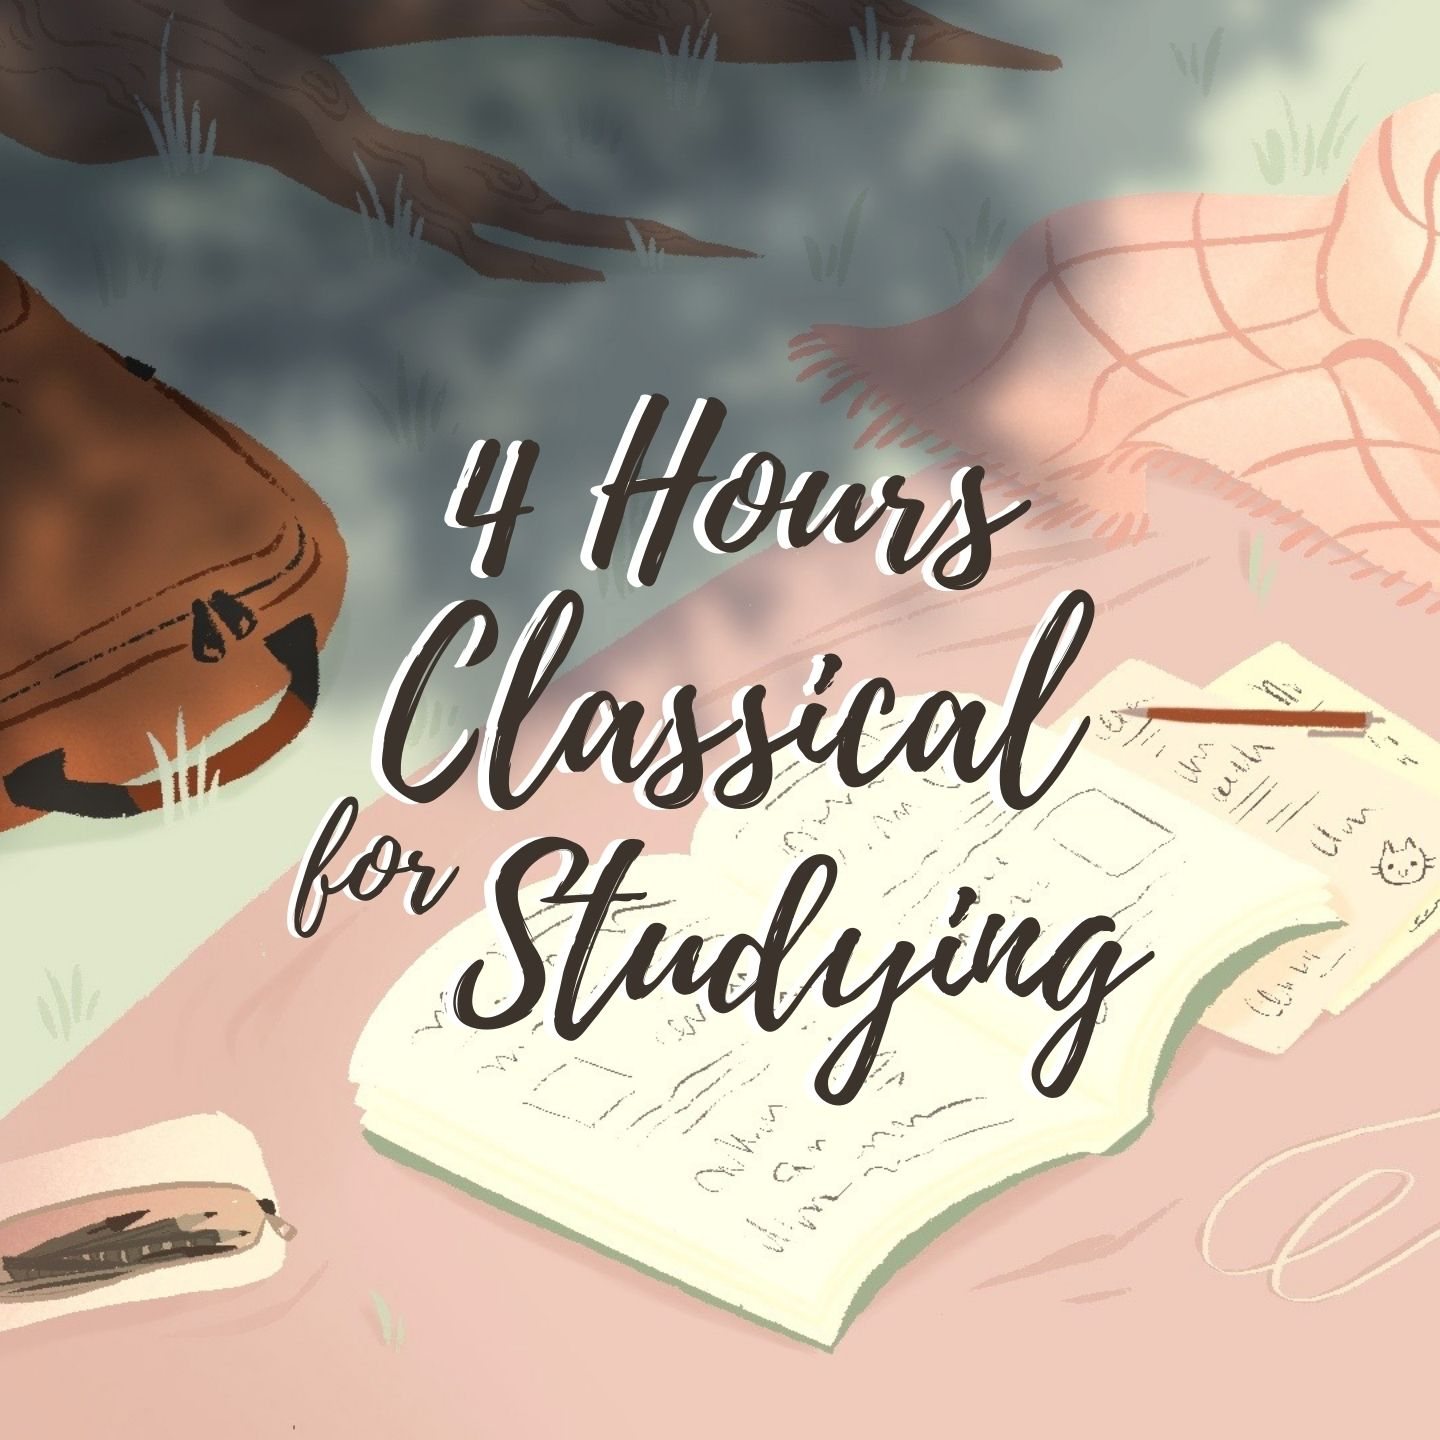 4 Hours of Classical Music for Relaxation, Studying & Concentration